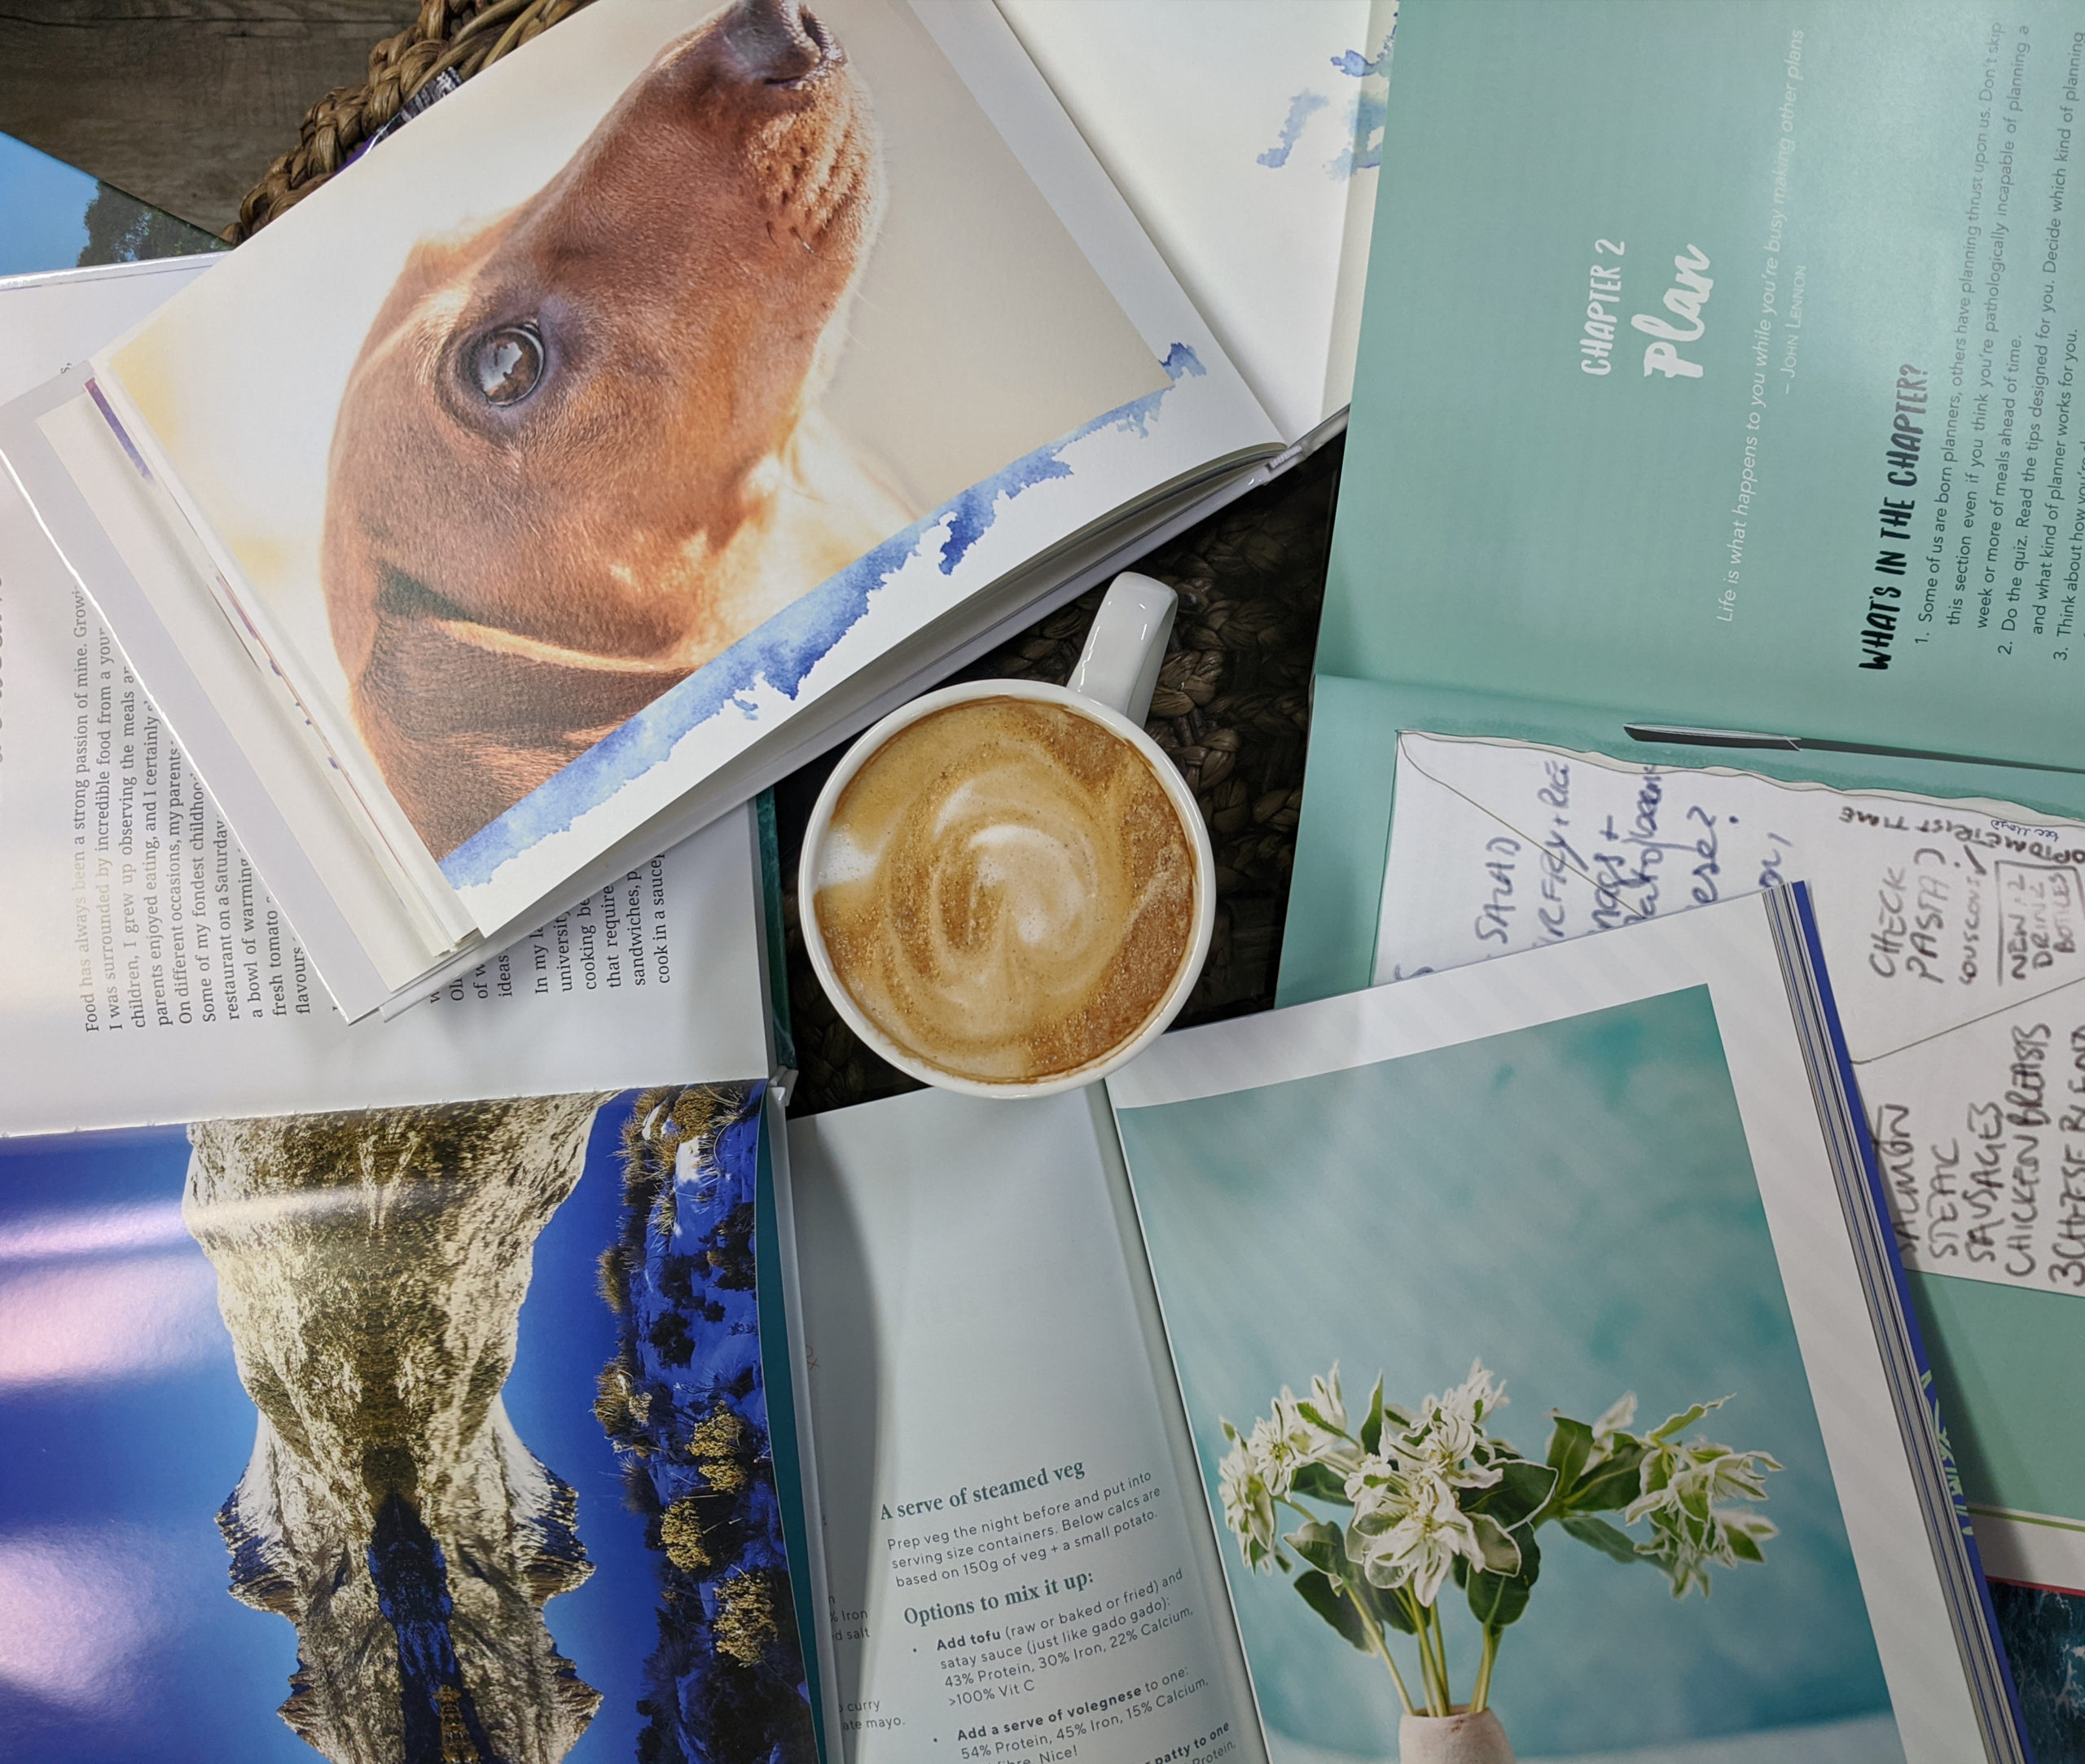 A flat lay image of a cup of coffee surrounded by open photo books. There are photos of a landscape, a dog, and a flower arrangement.